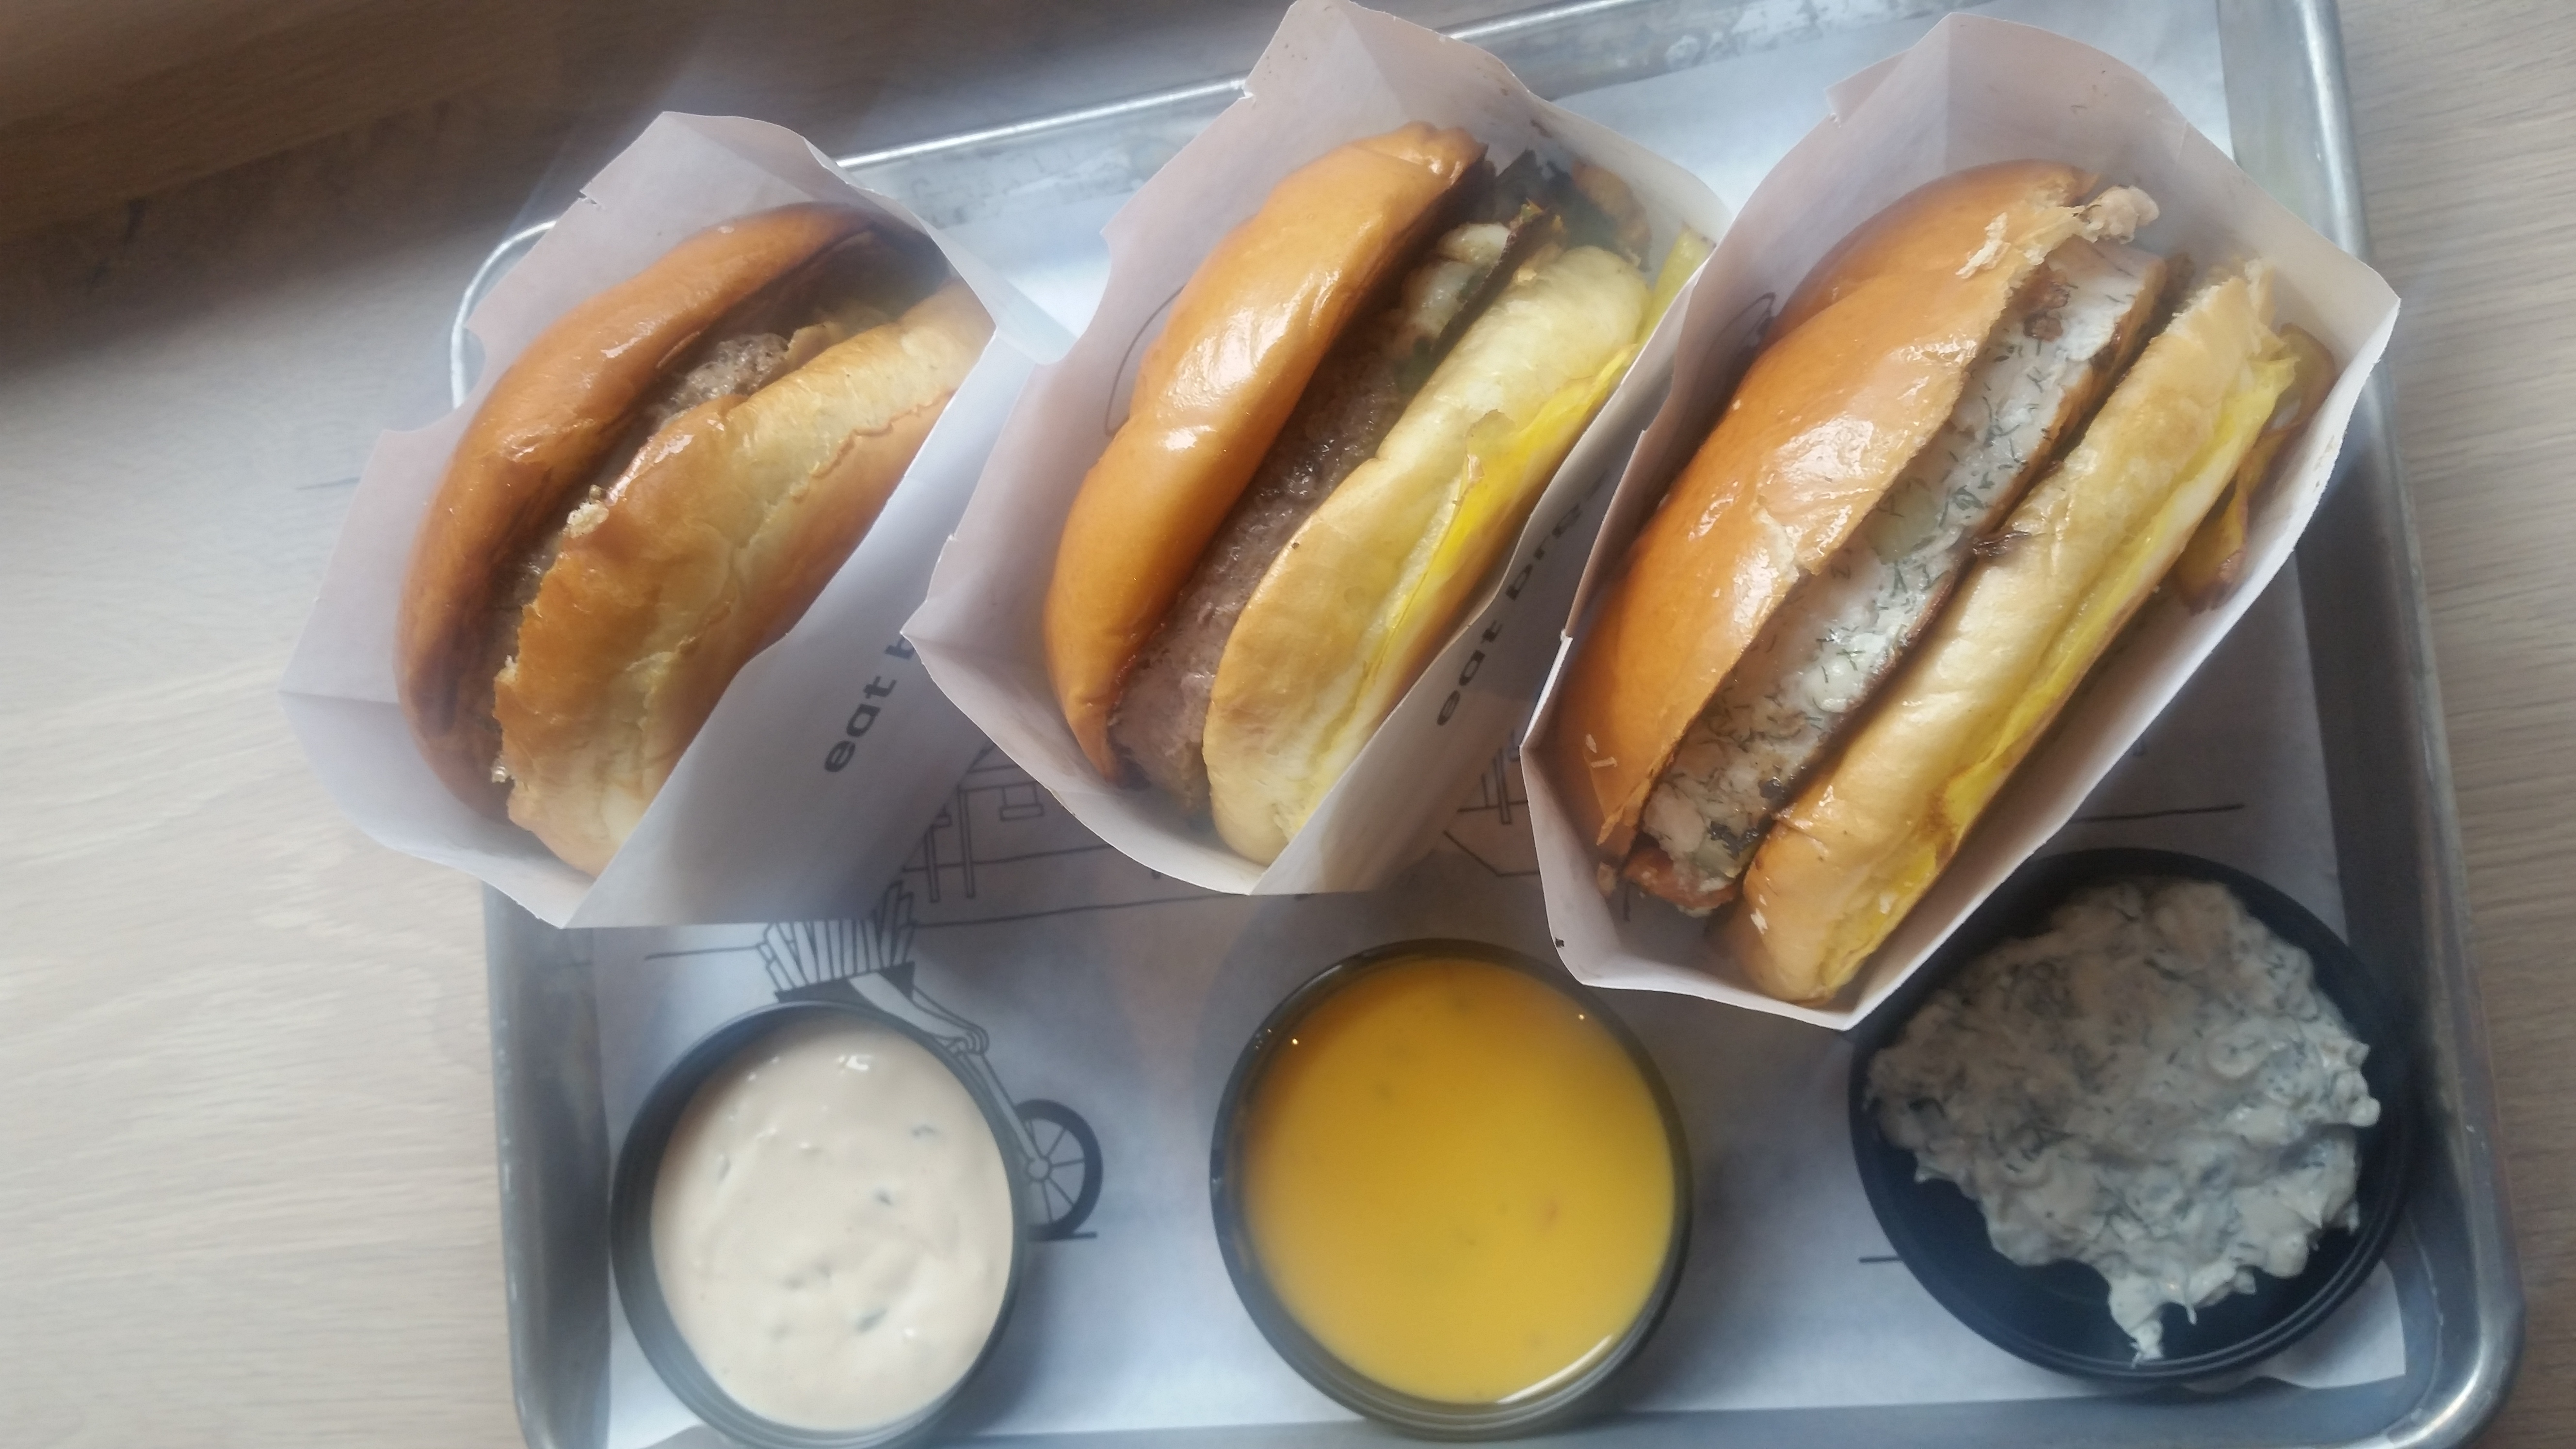 A Fast-Casual Place Touting Revolutionary, Mix-In Burgers Opens in D.C.